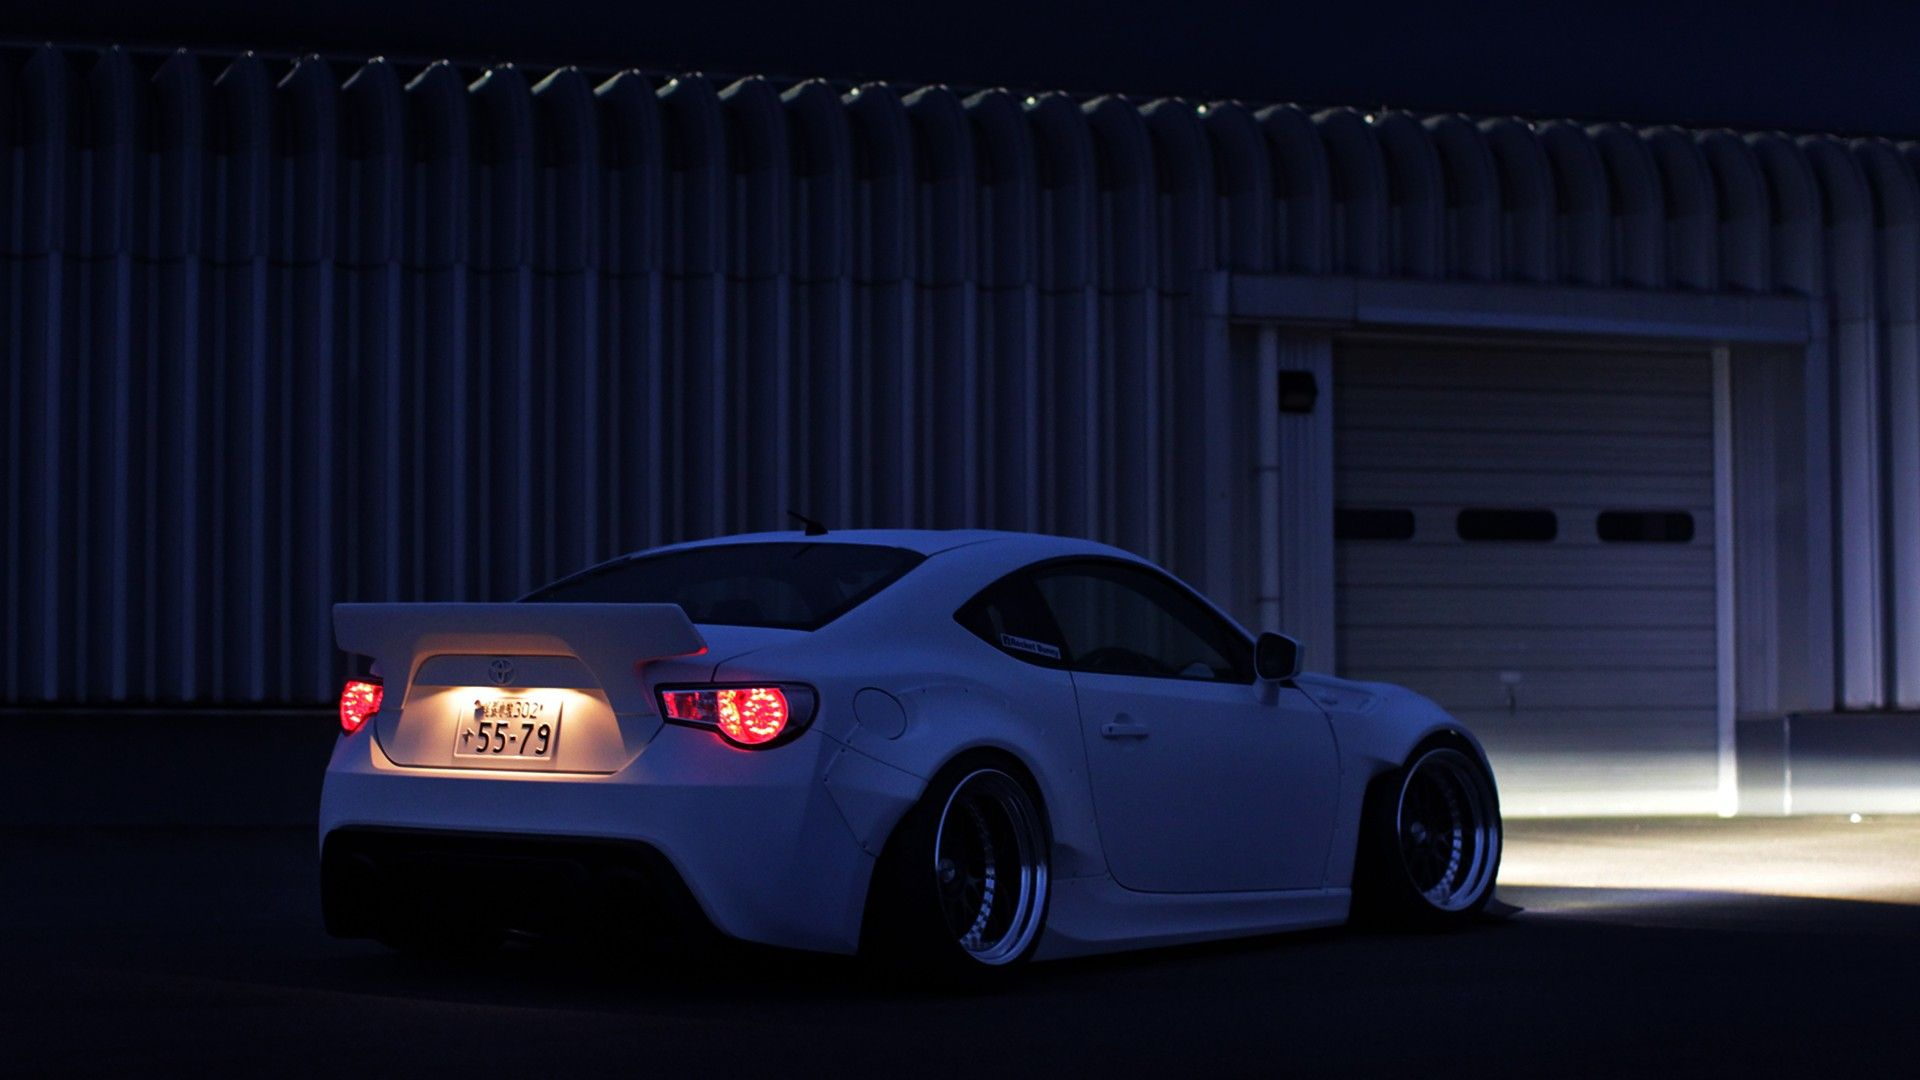 We present you our collection of desktop wallpaper theme: Aesthetic JDM Wallpapers - Wallpaper Cave